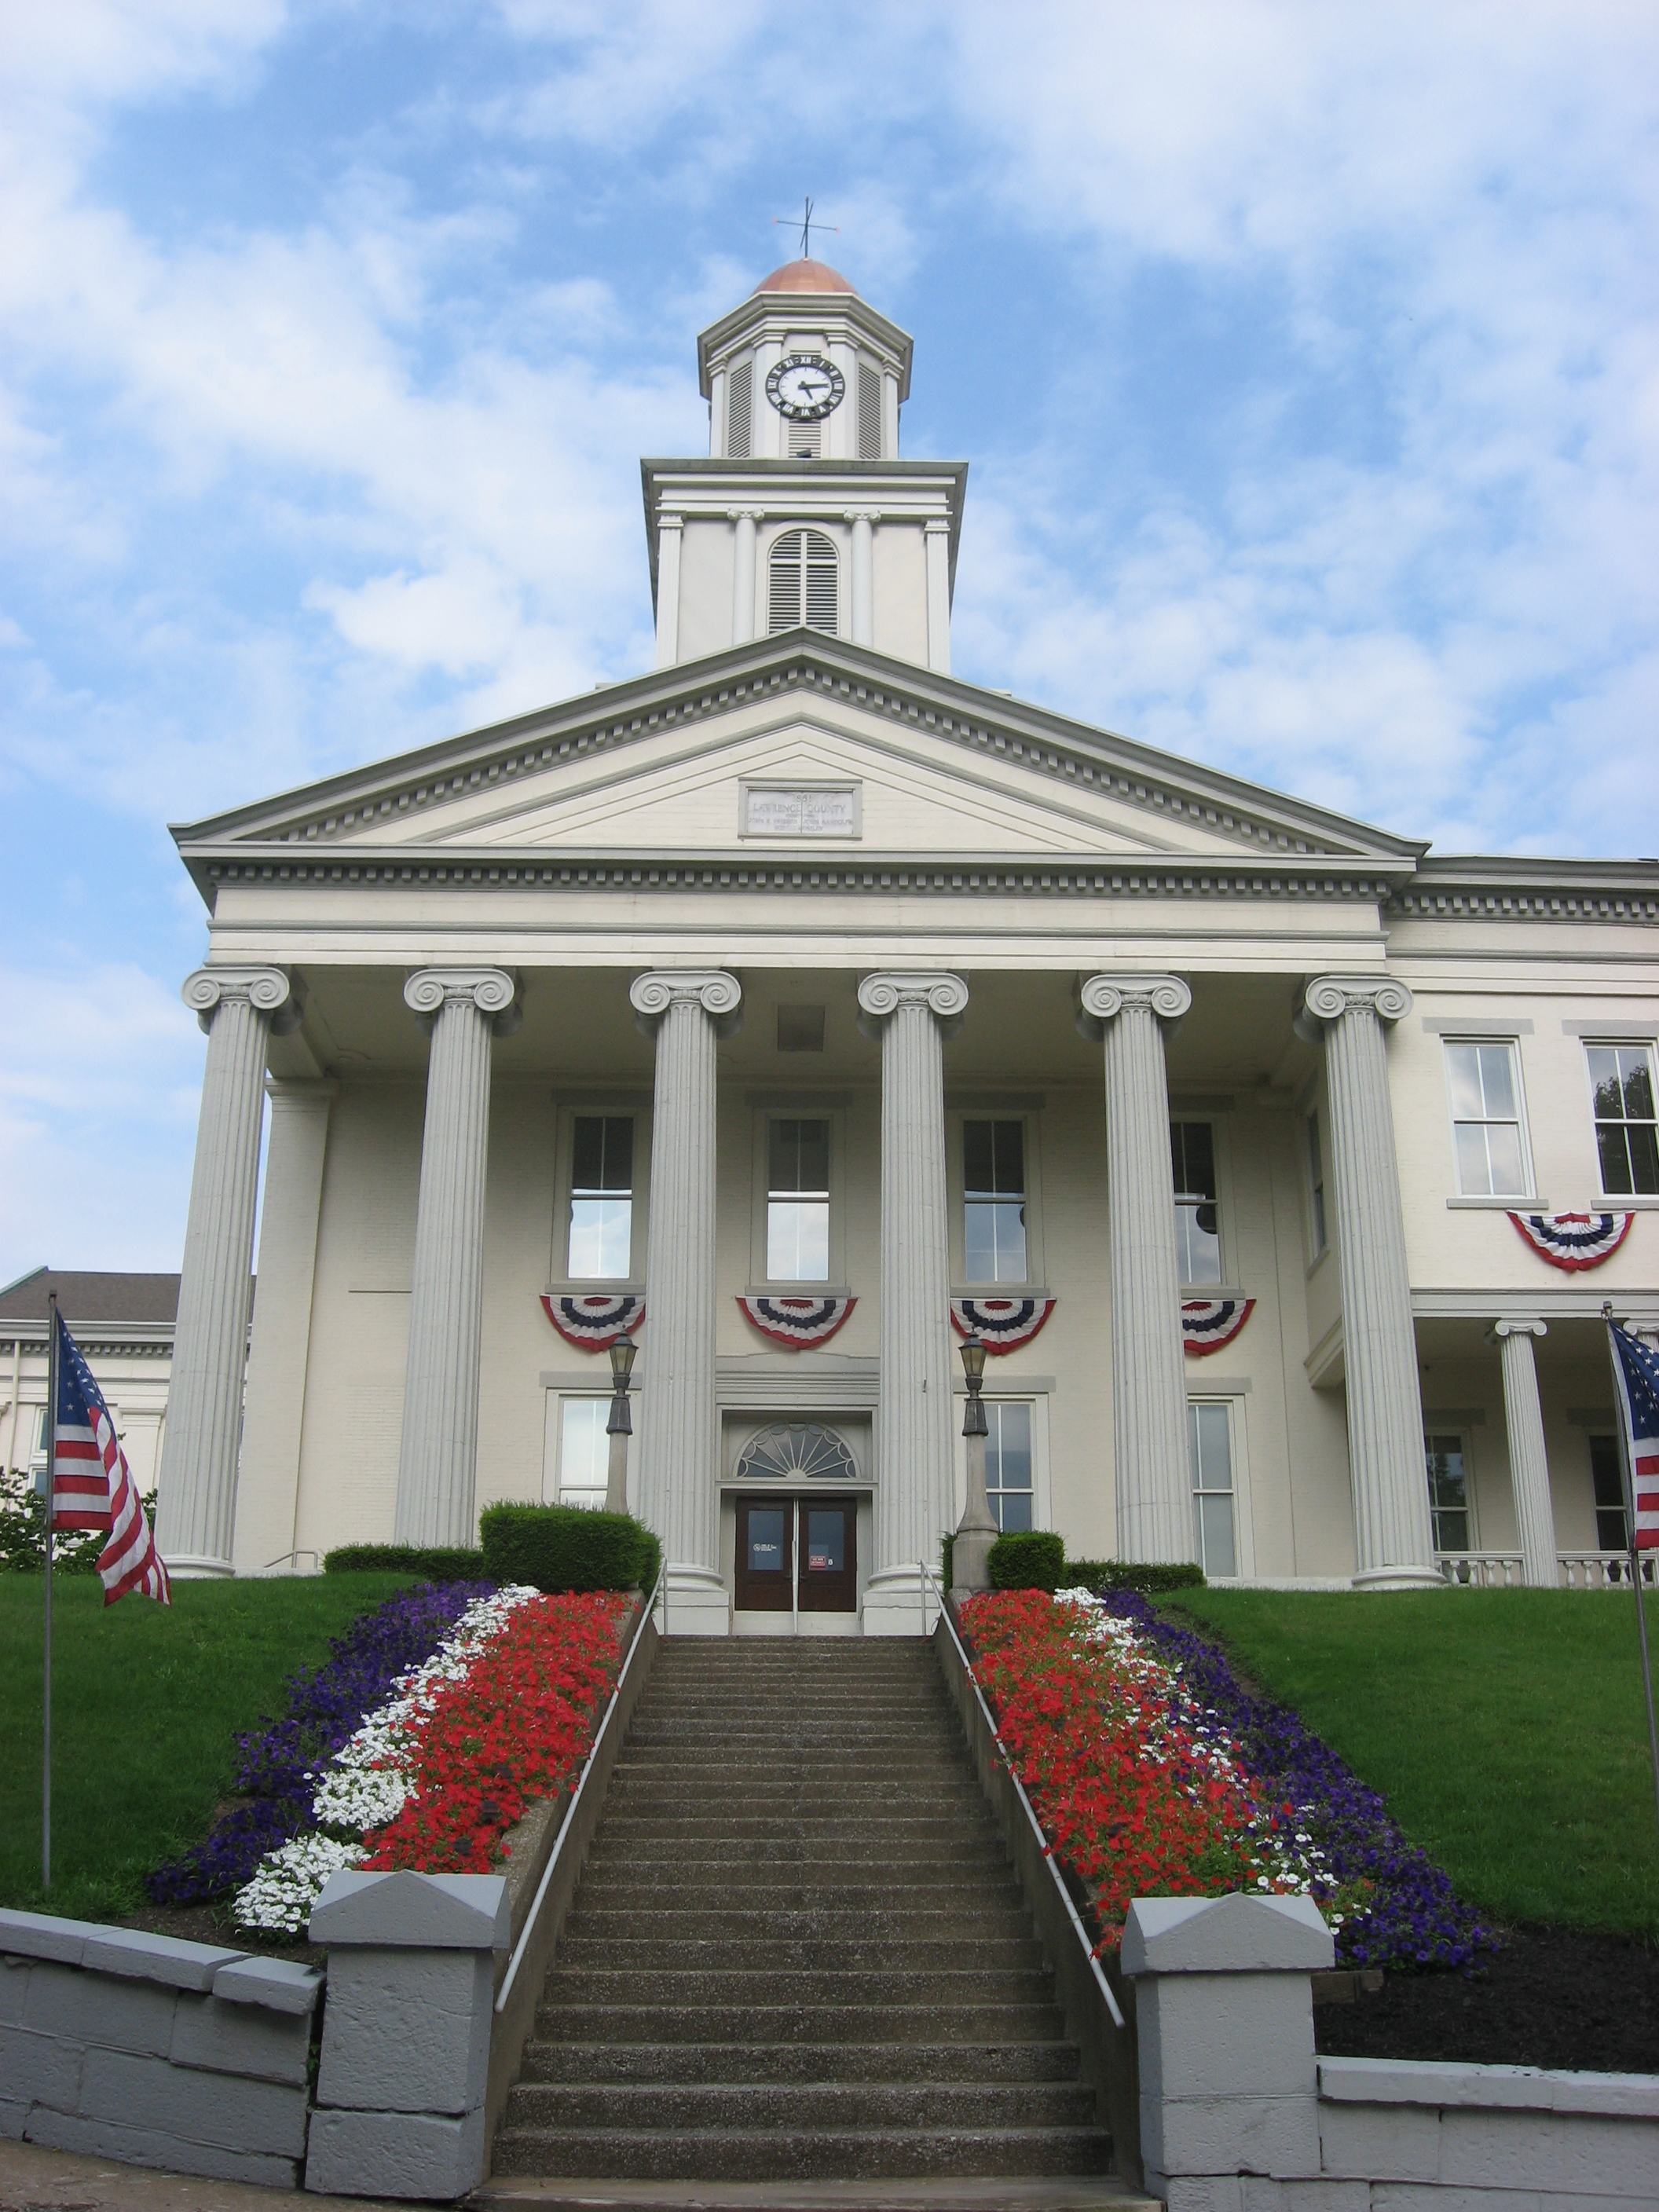 File:Stairs at the Lawrence County Courthouse.jpg - Wikimedia Commonsbalance of lawrence county